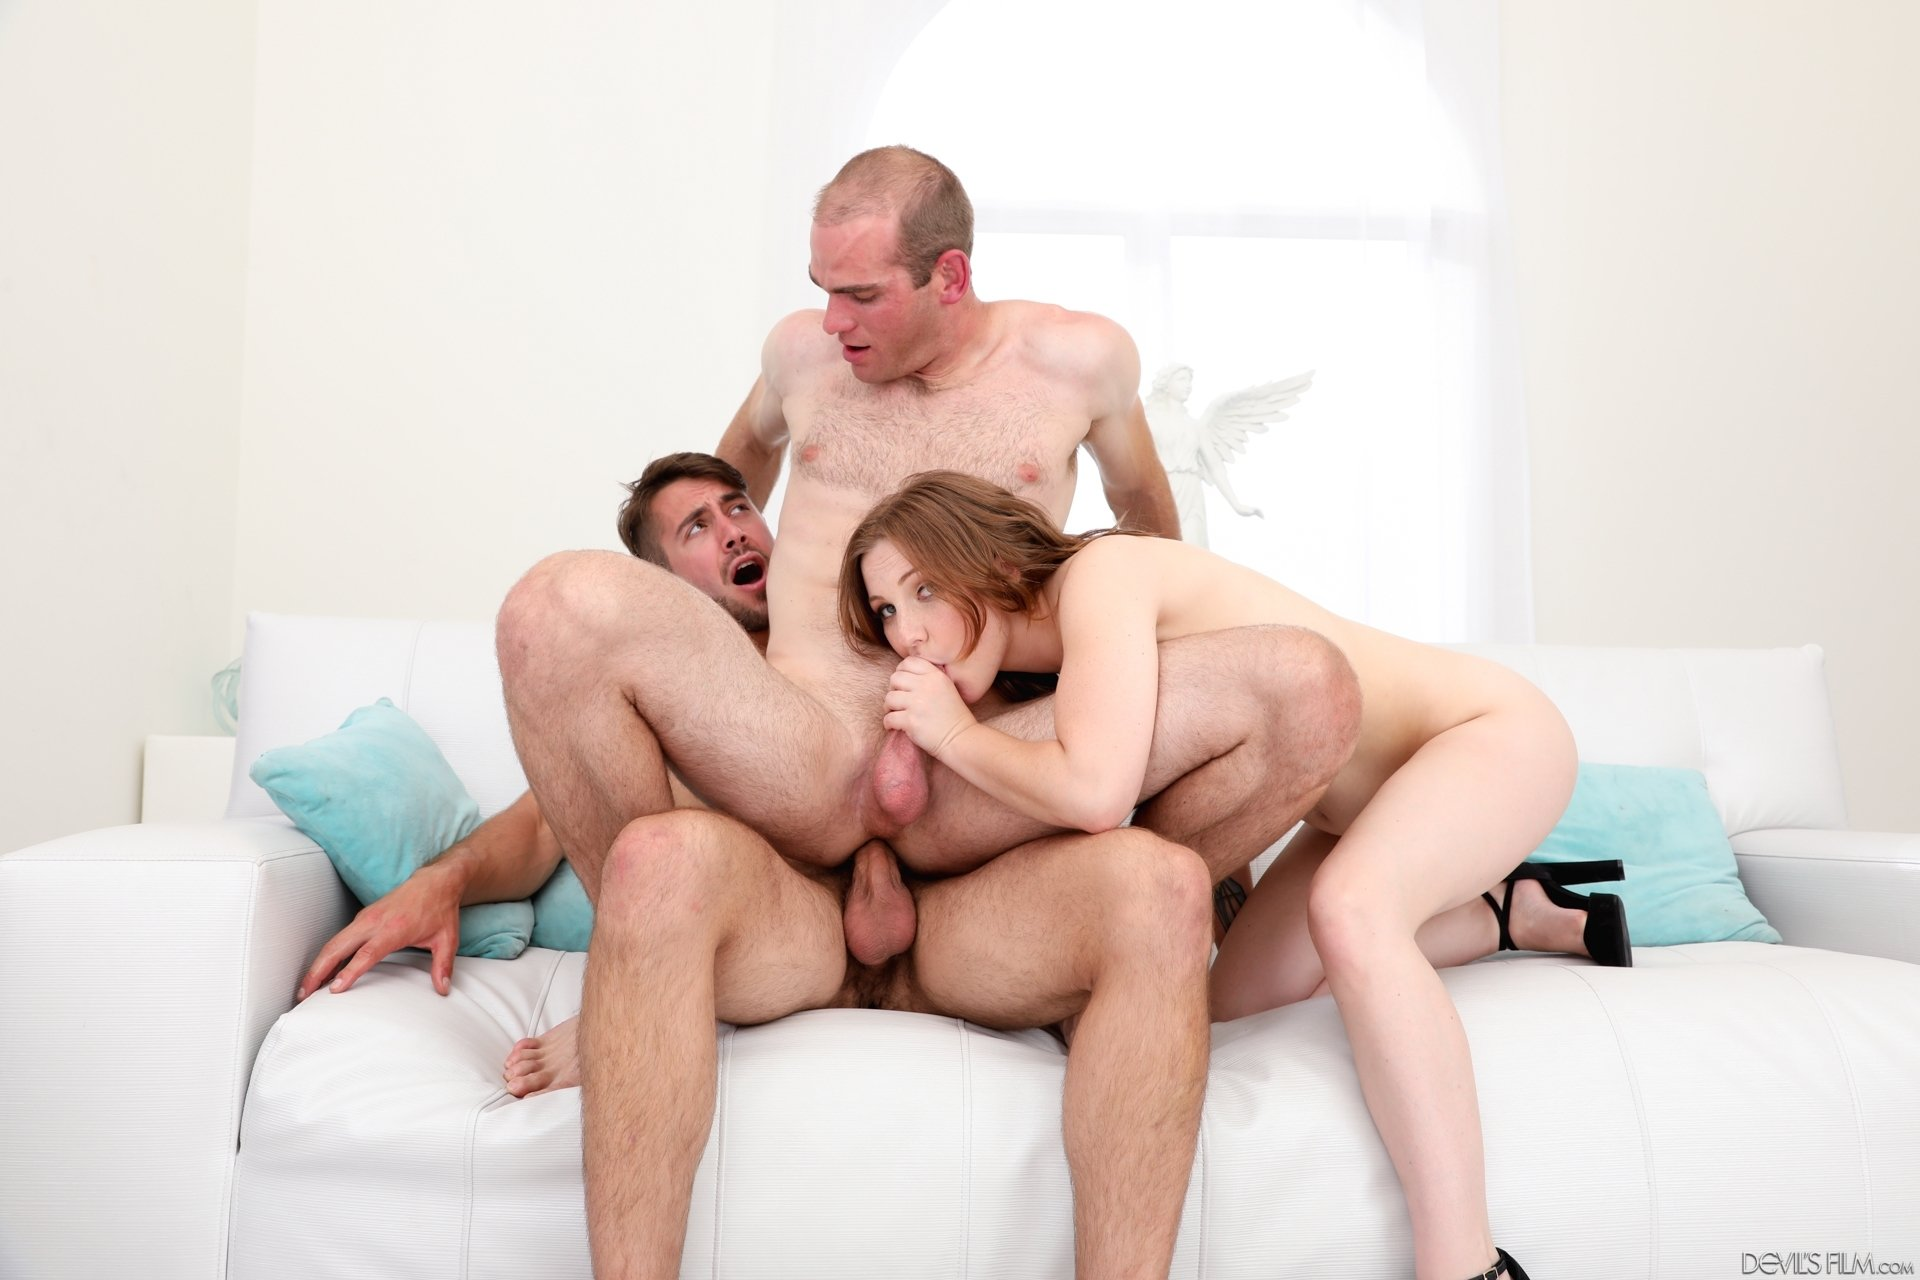 bisexual threesome with strapon authoritative answer